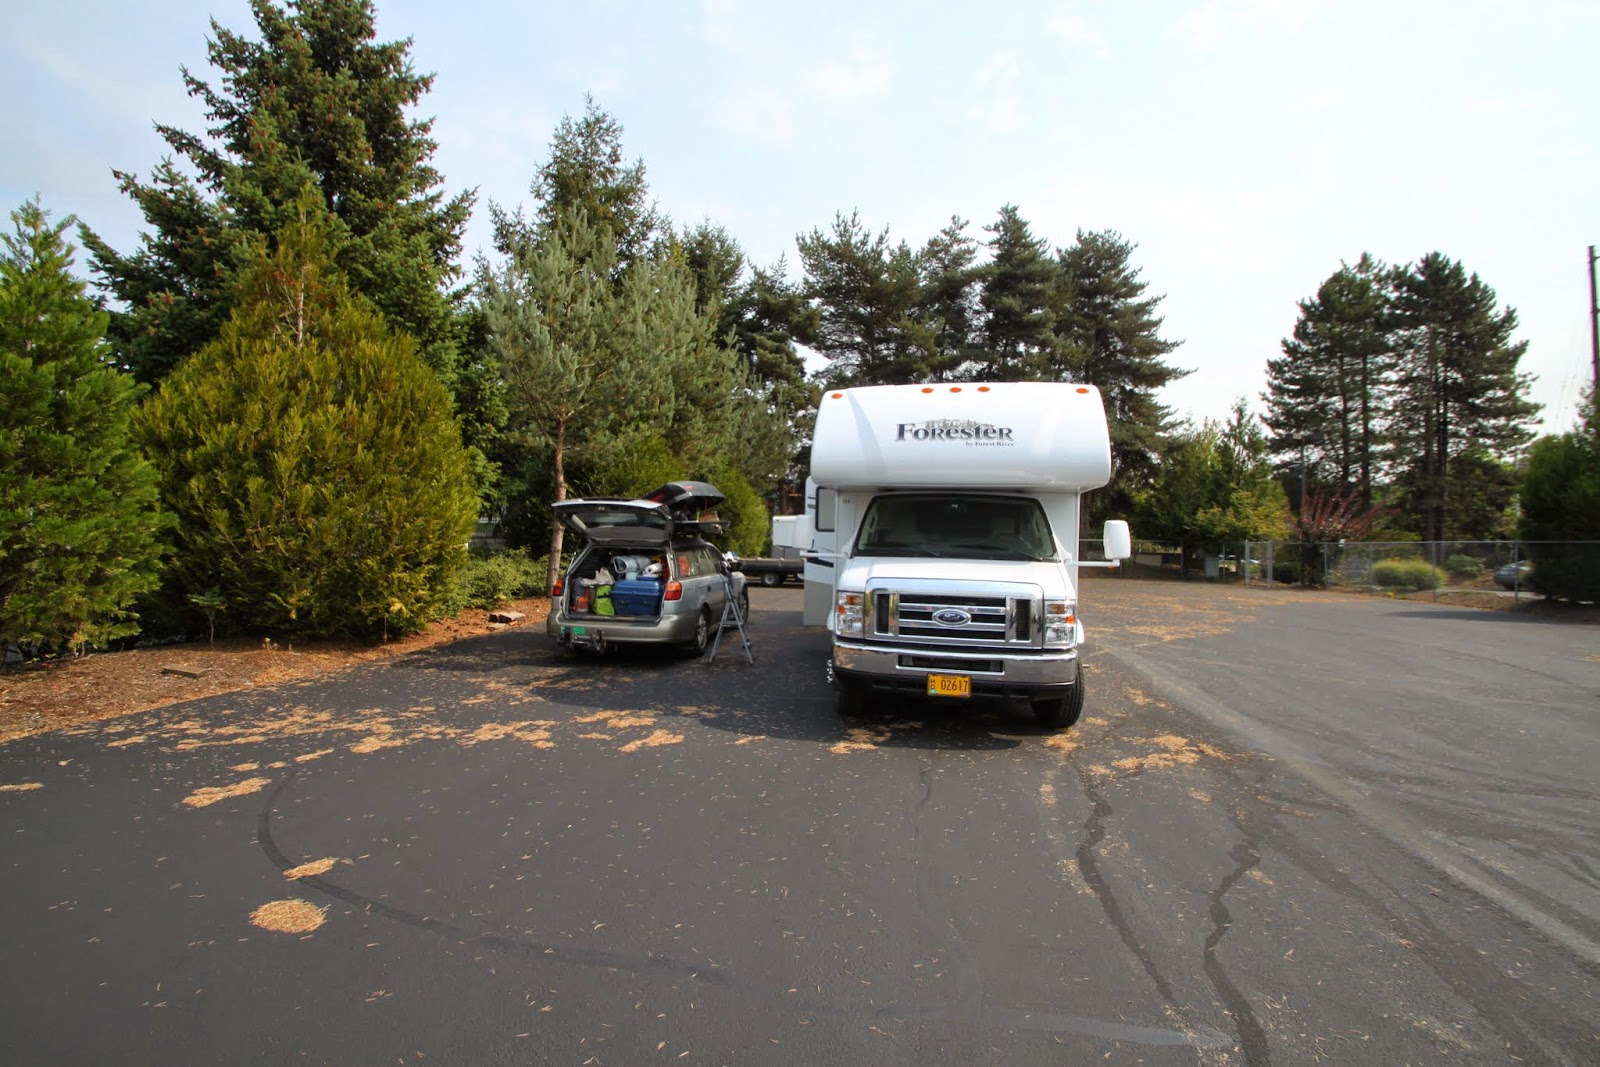 loading the RV